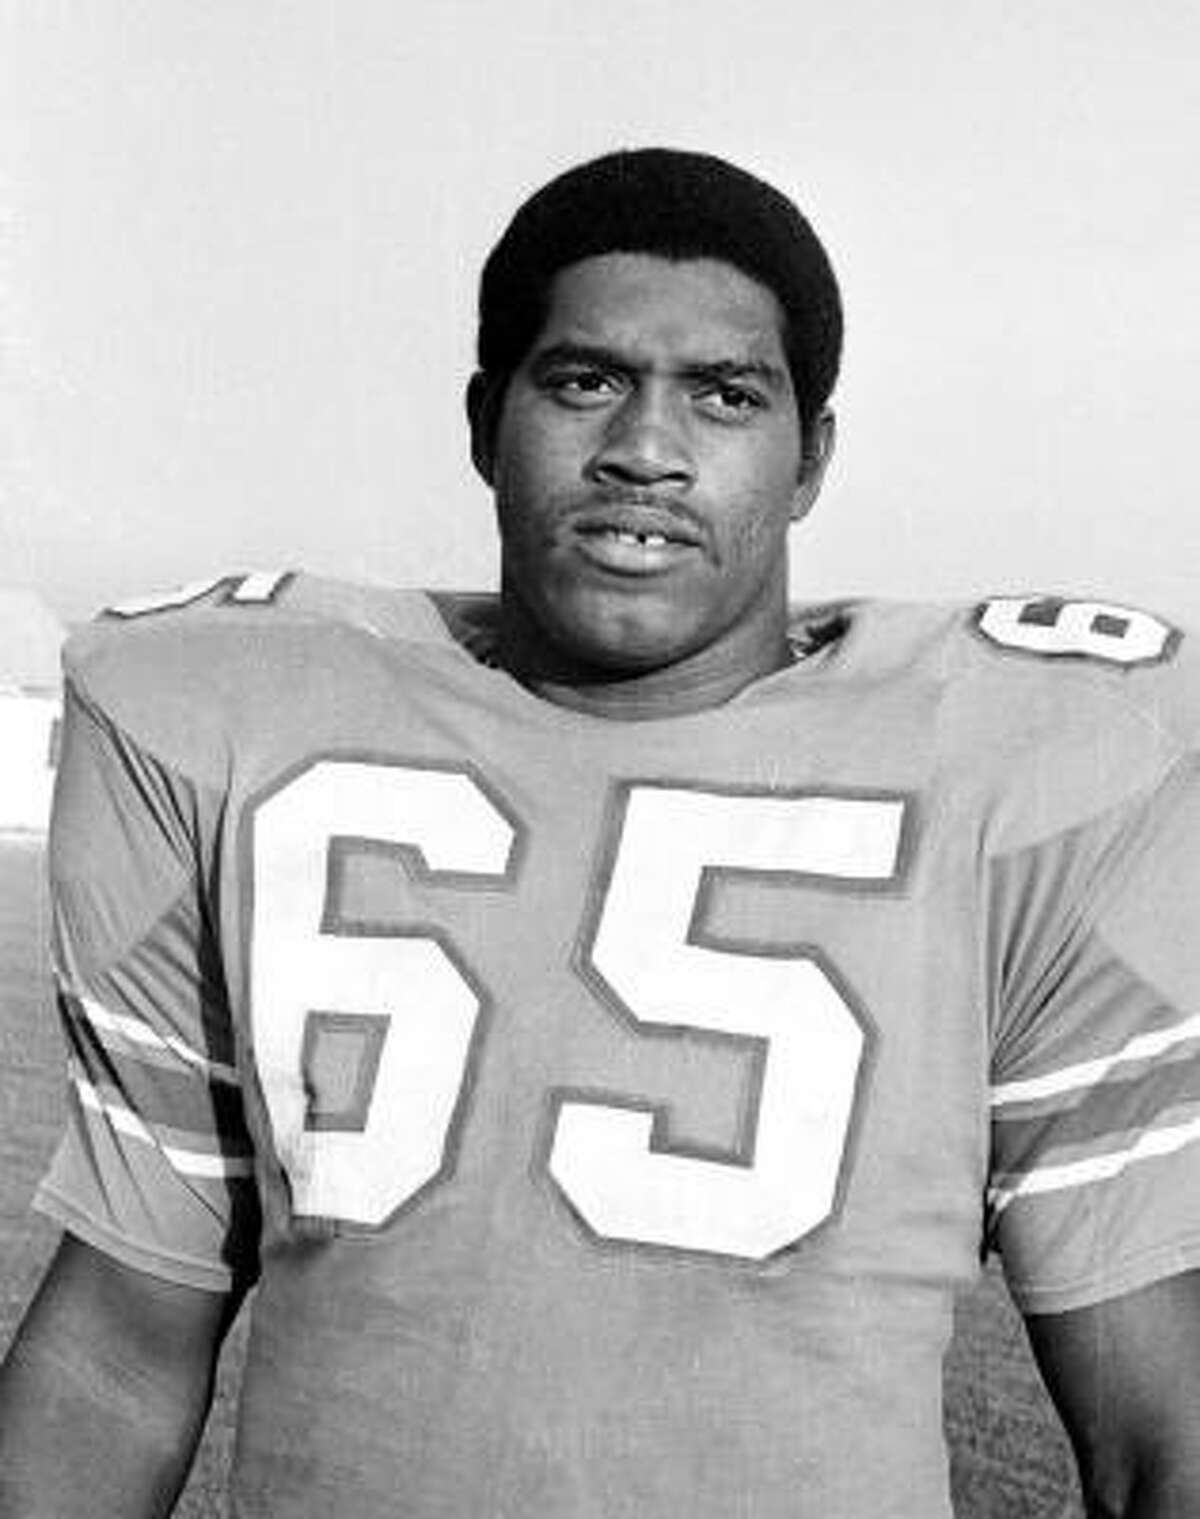 ELVIN BETHEA, OILERS Positions: DE Seasons: 16 Years: 1968-83 Highlights: An eight-time Pro Bowler who played on two AFC Championship Game teams and was inducted into the Pro Football Hall of Fame in 2003. Retired as an Oiler.